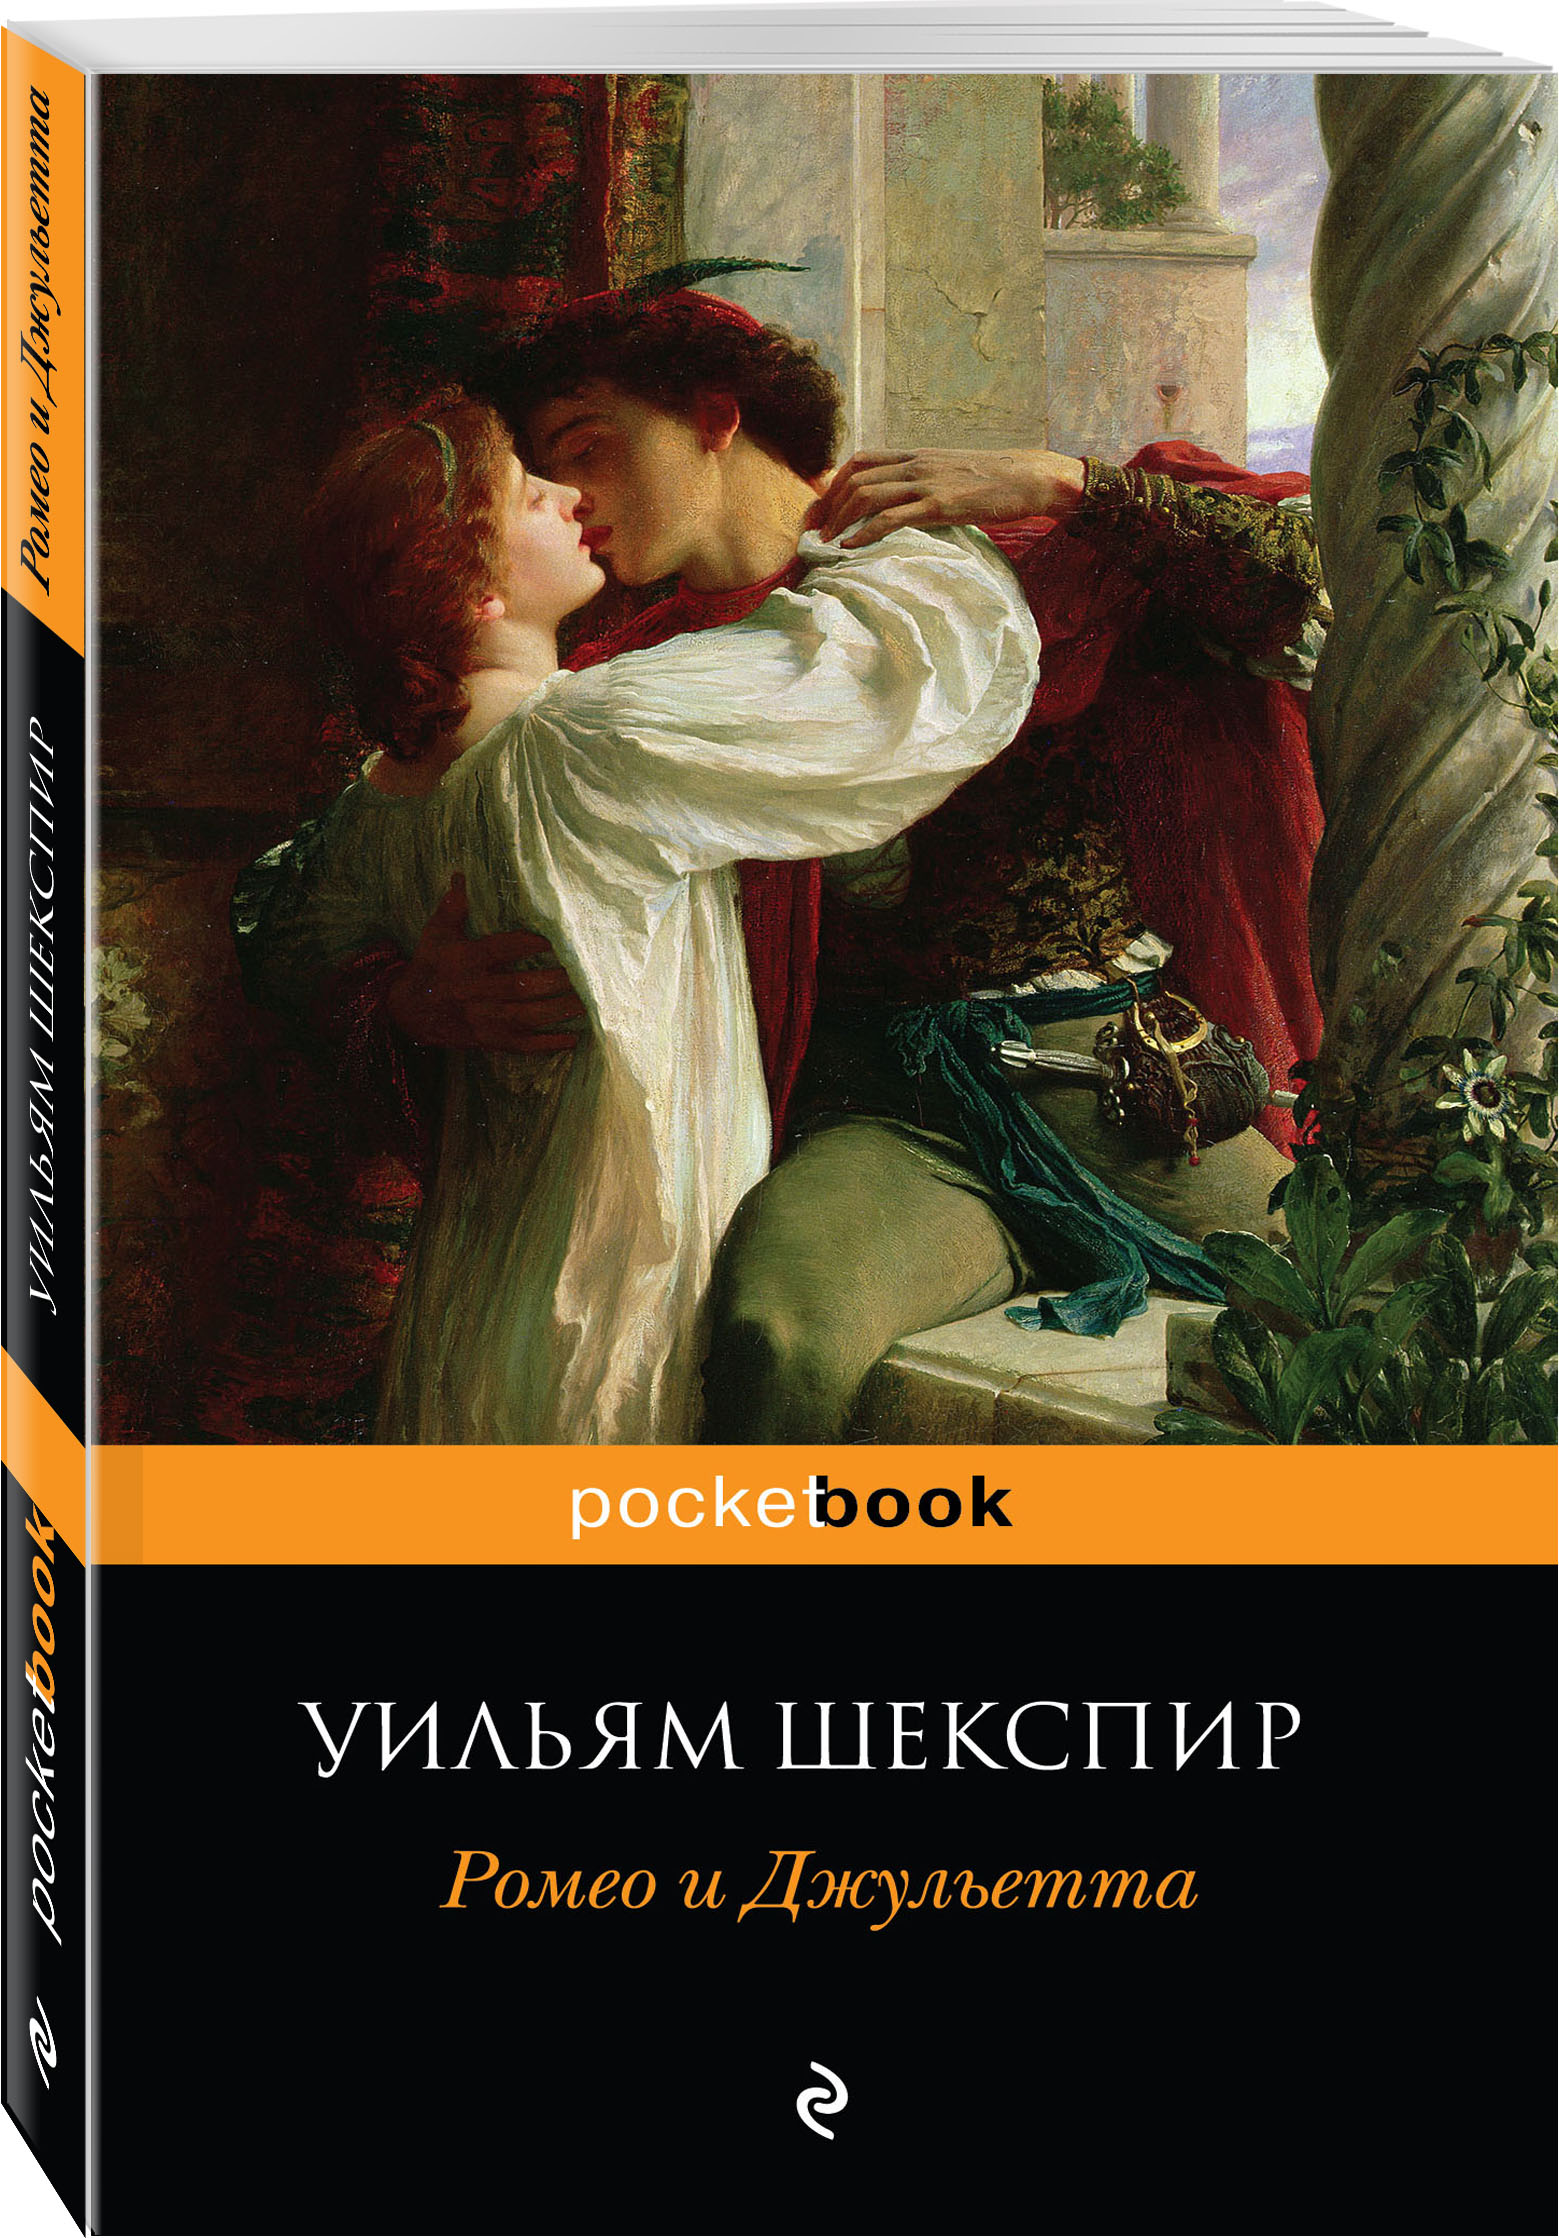 romeo and juliet romeo vs count Count paris or county paris is a fictional character in william shakespeare's romeo and juliethe is a suitor of juliethe is handsome, wealthy, and a kinsman to prince escalus.